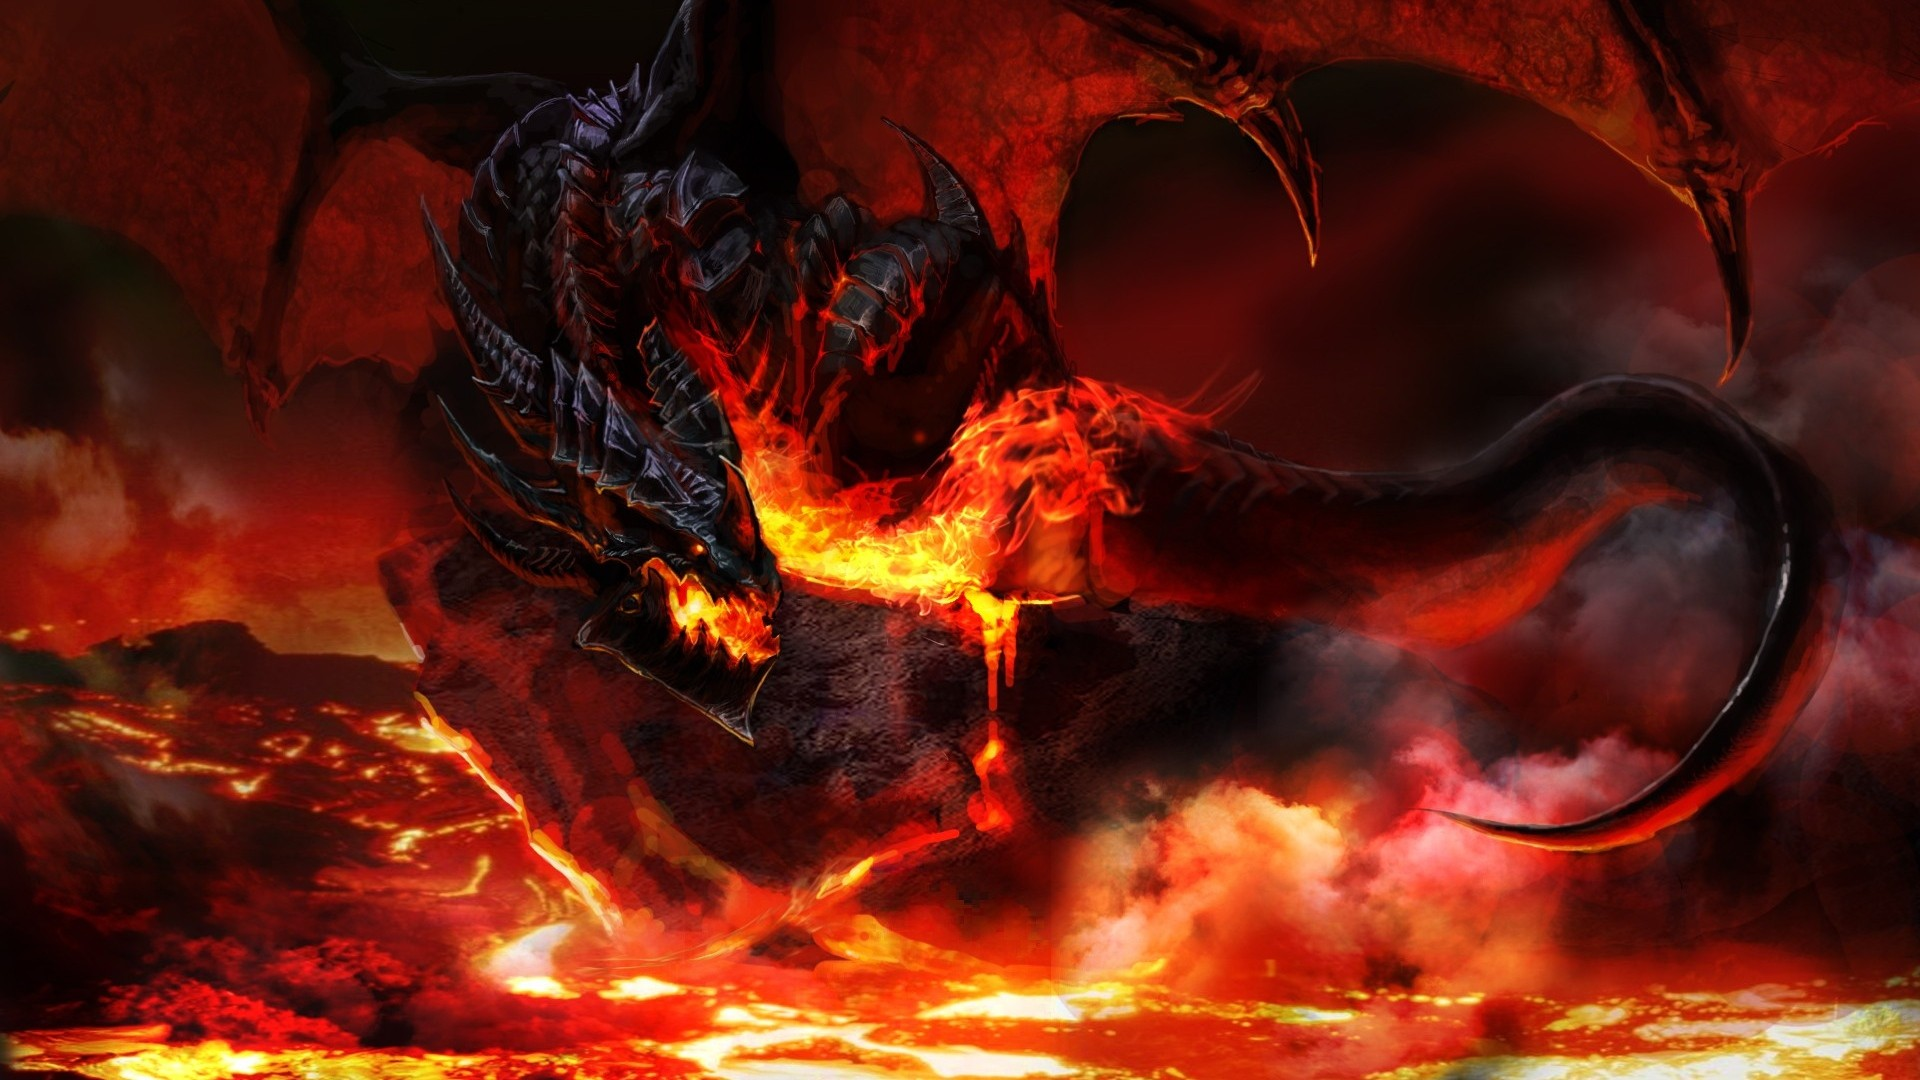 dragon wallpaper widescreen high resolution - photo #23